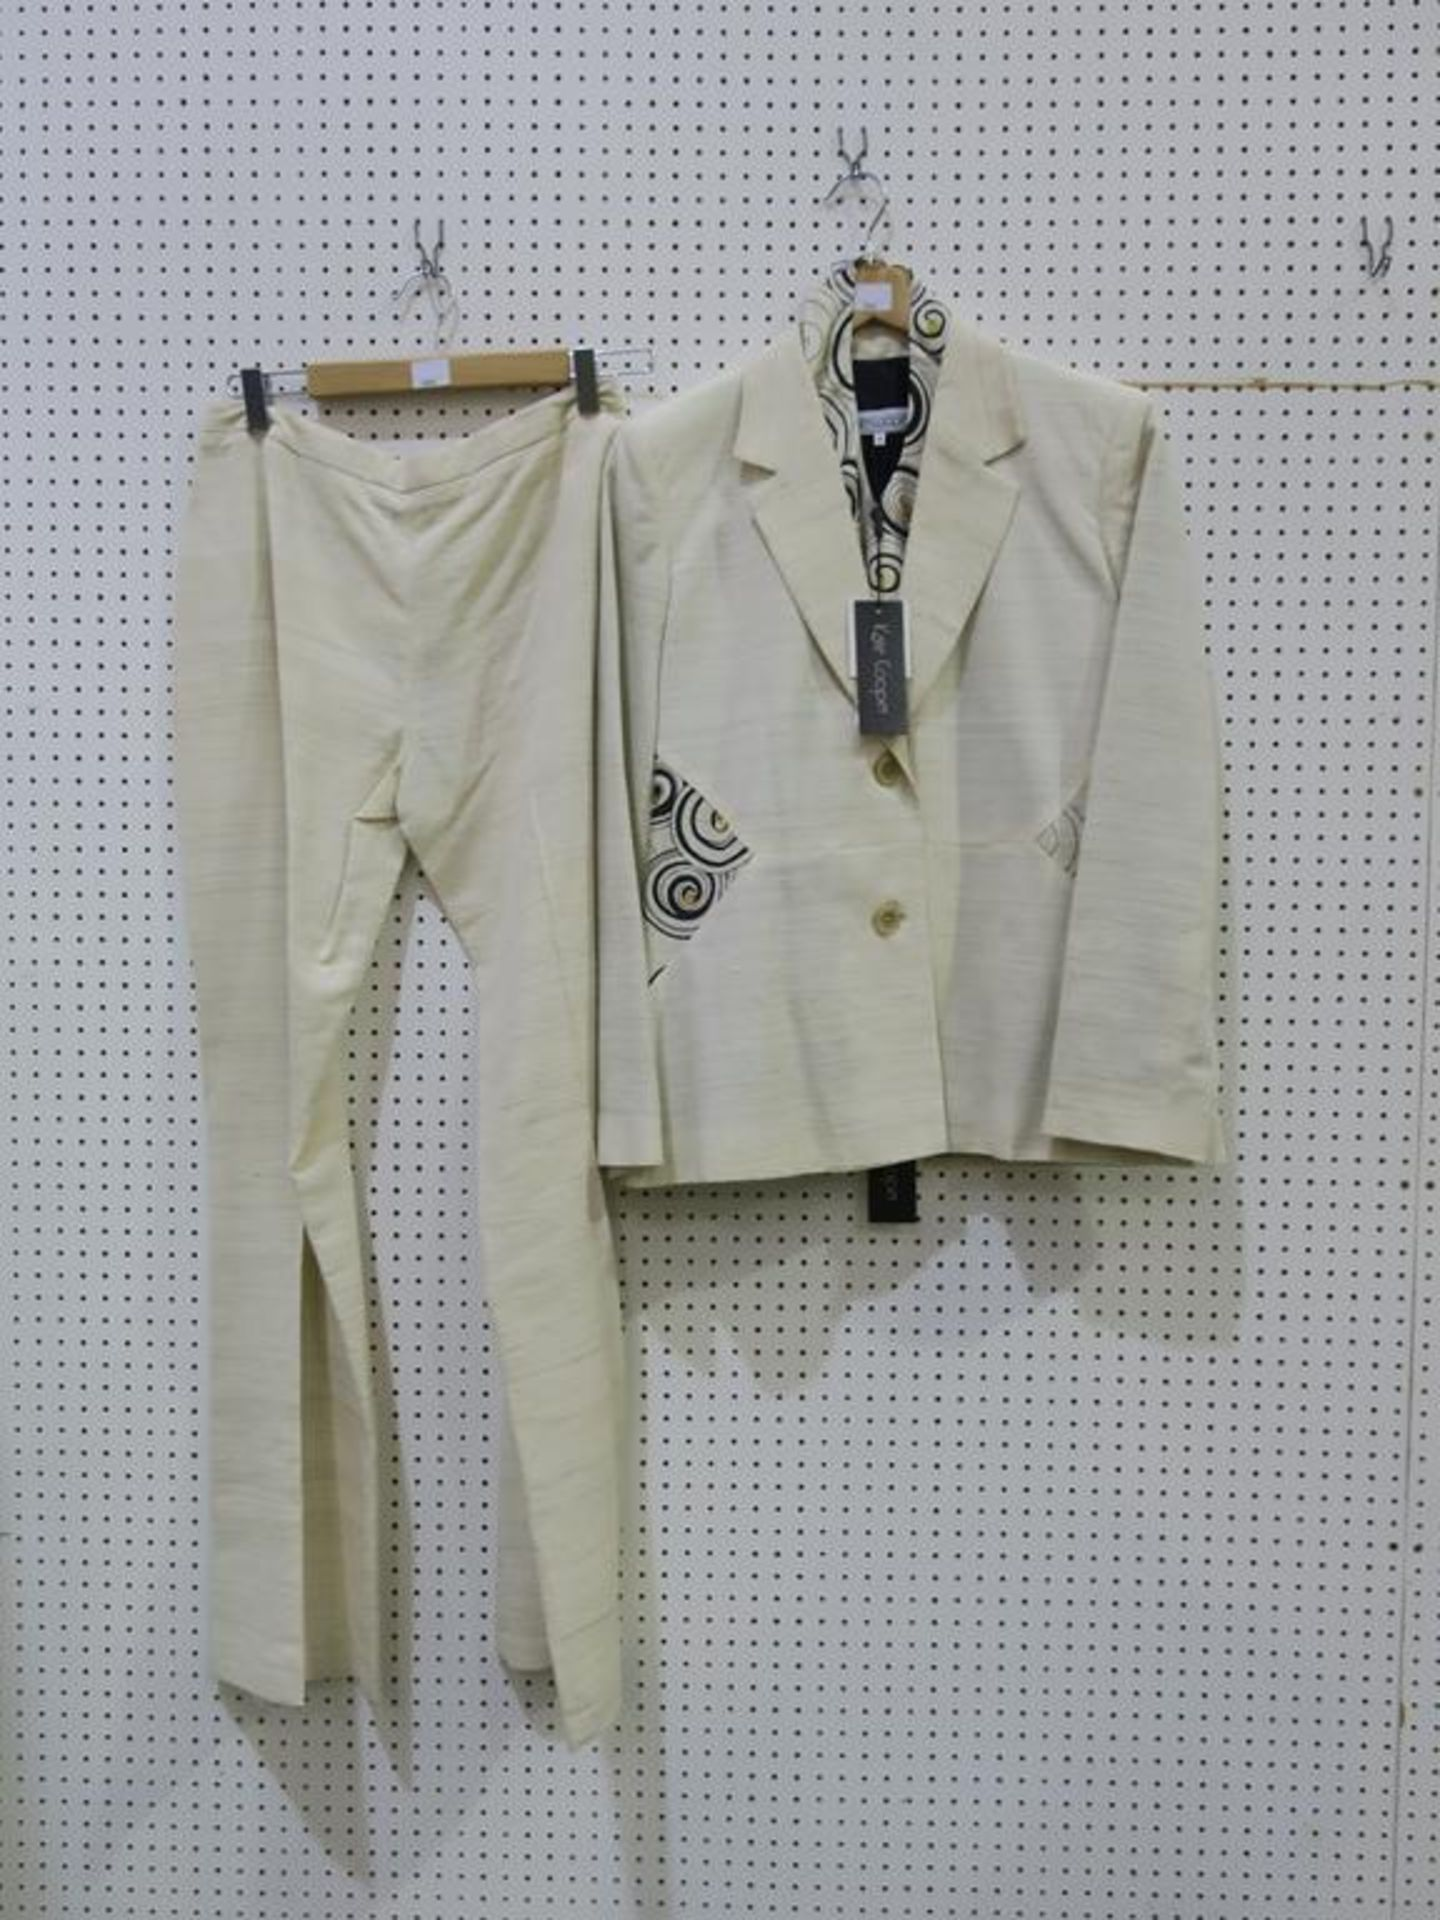 Lot 8044 - * Three Ladies Garments. A Kate Cooper (size 12, RRP £312), a Contini (size 18, RRP £500) and a Veni